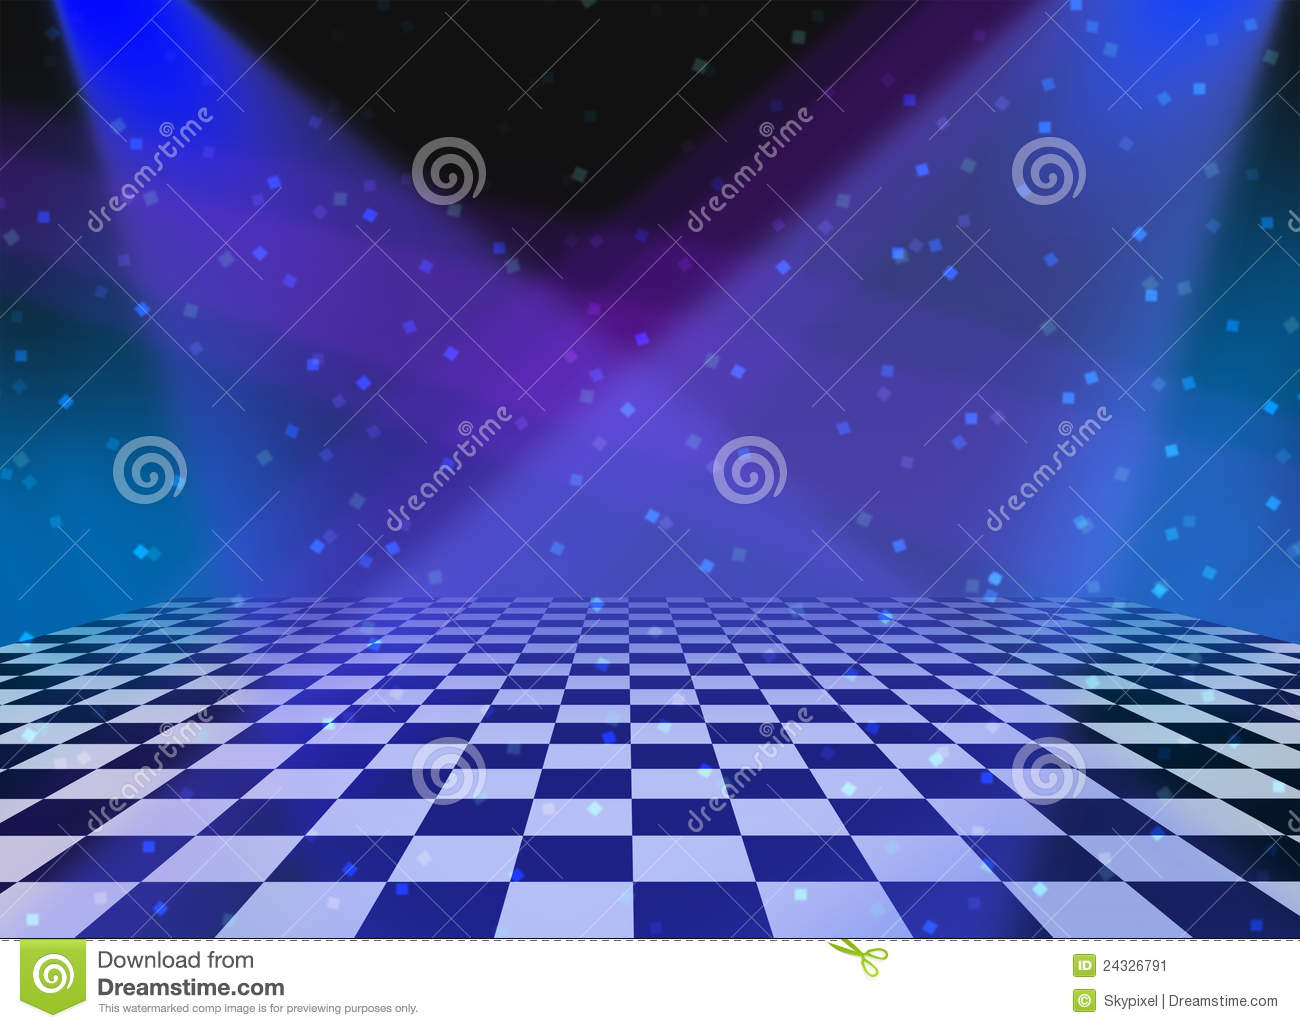 Party dance floor background stock illustration image for 123 get on the dance floor song download